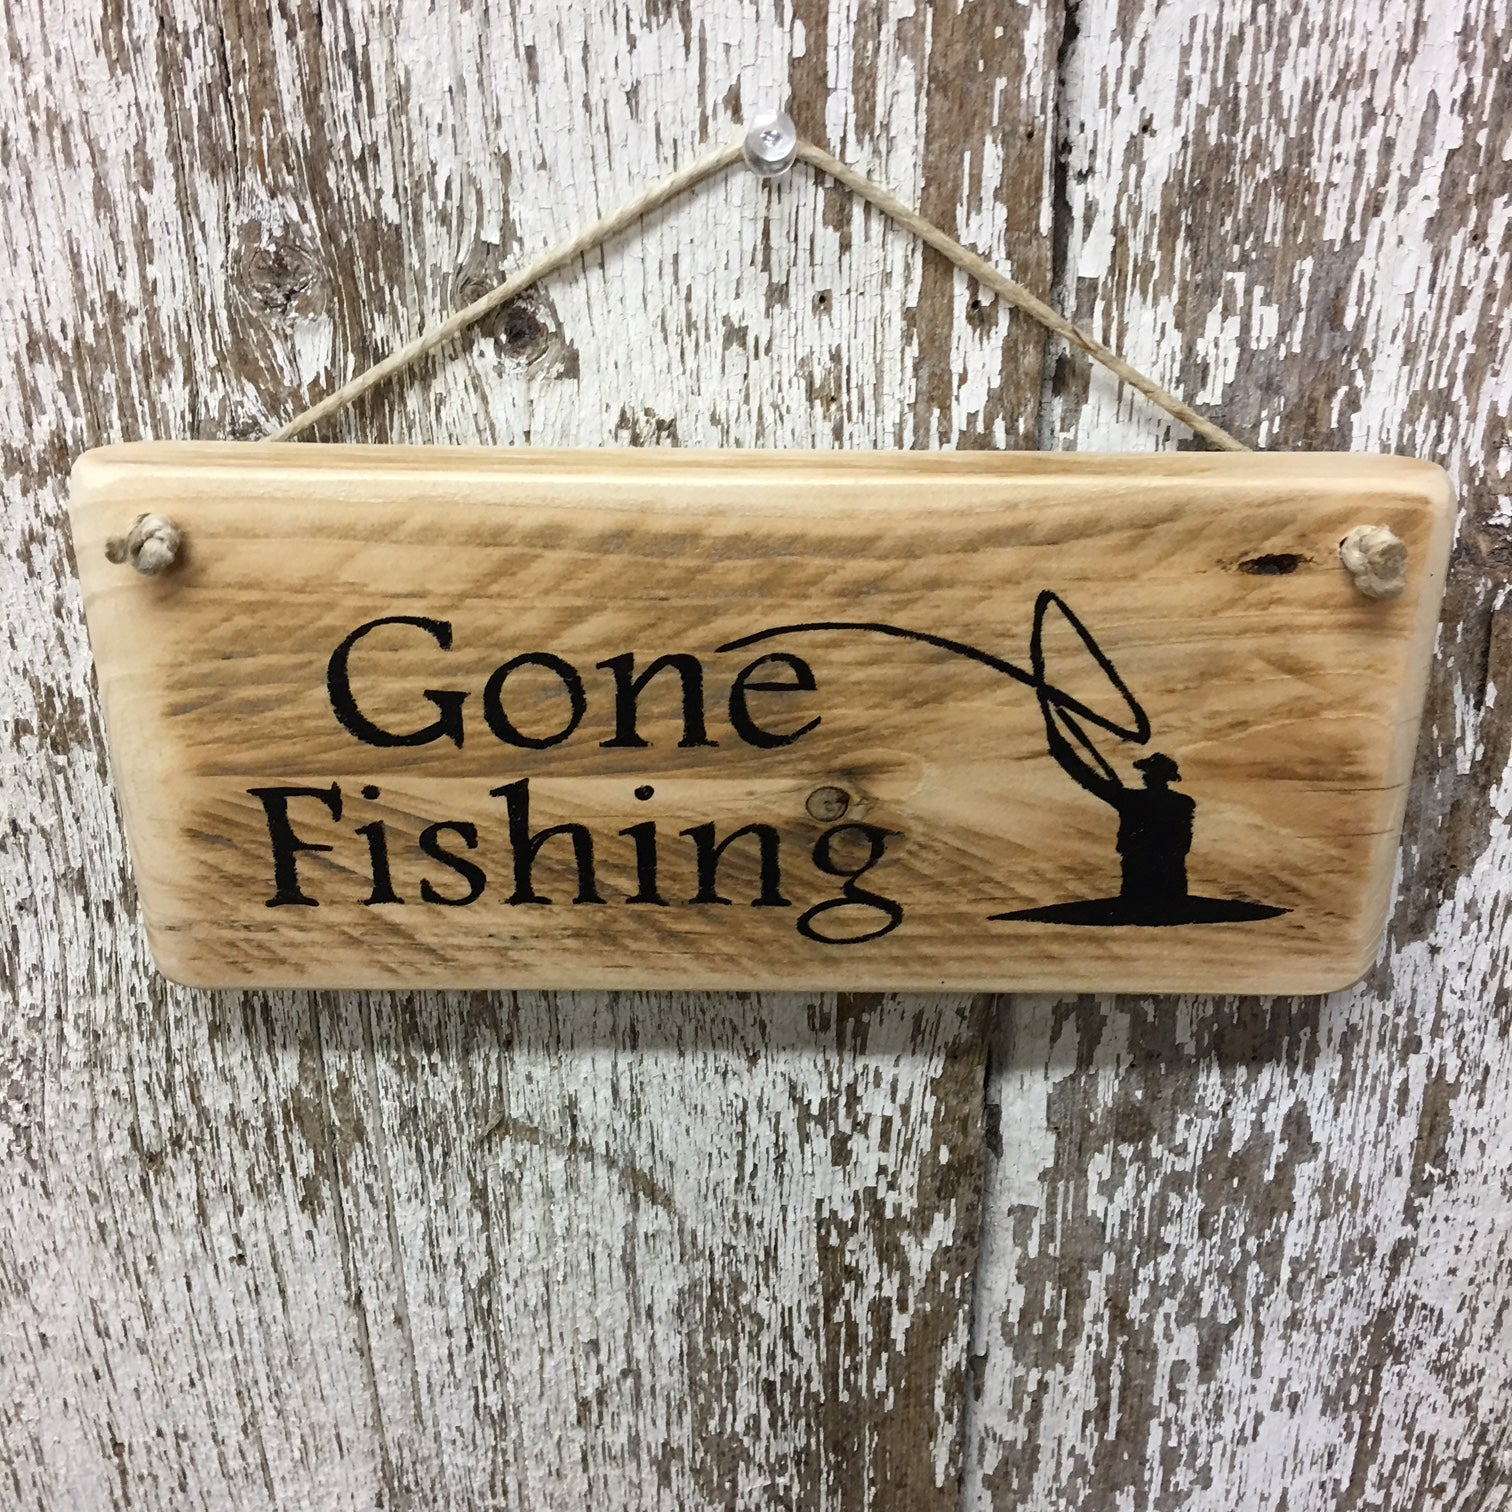 fishing gifts for fly fisherman gone fishing wooden signs